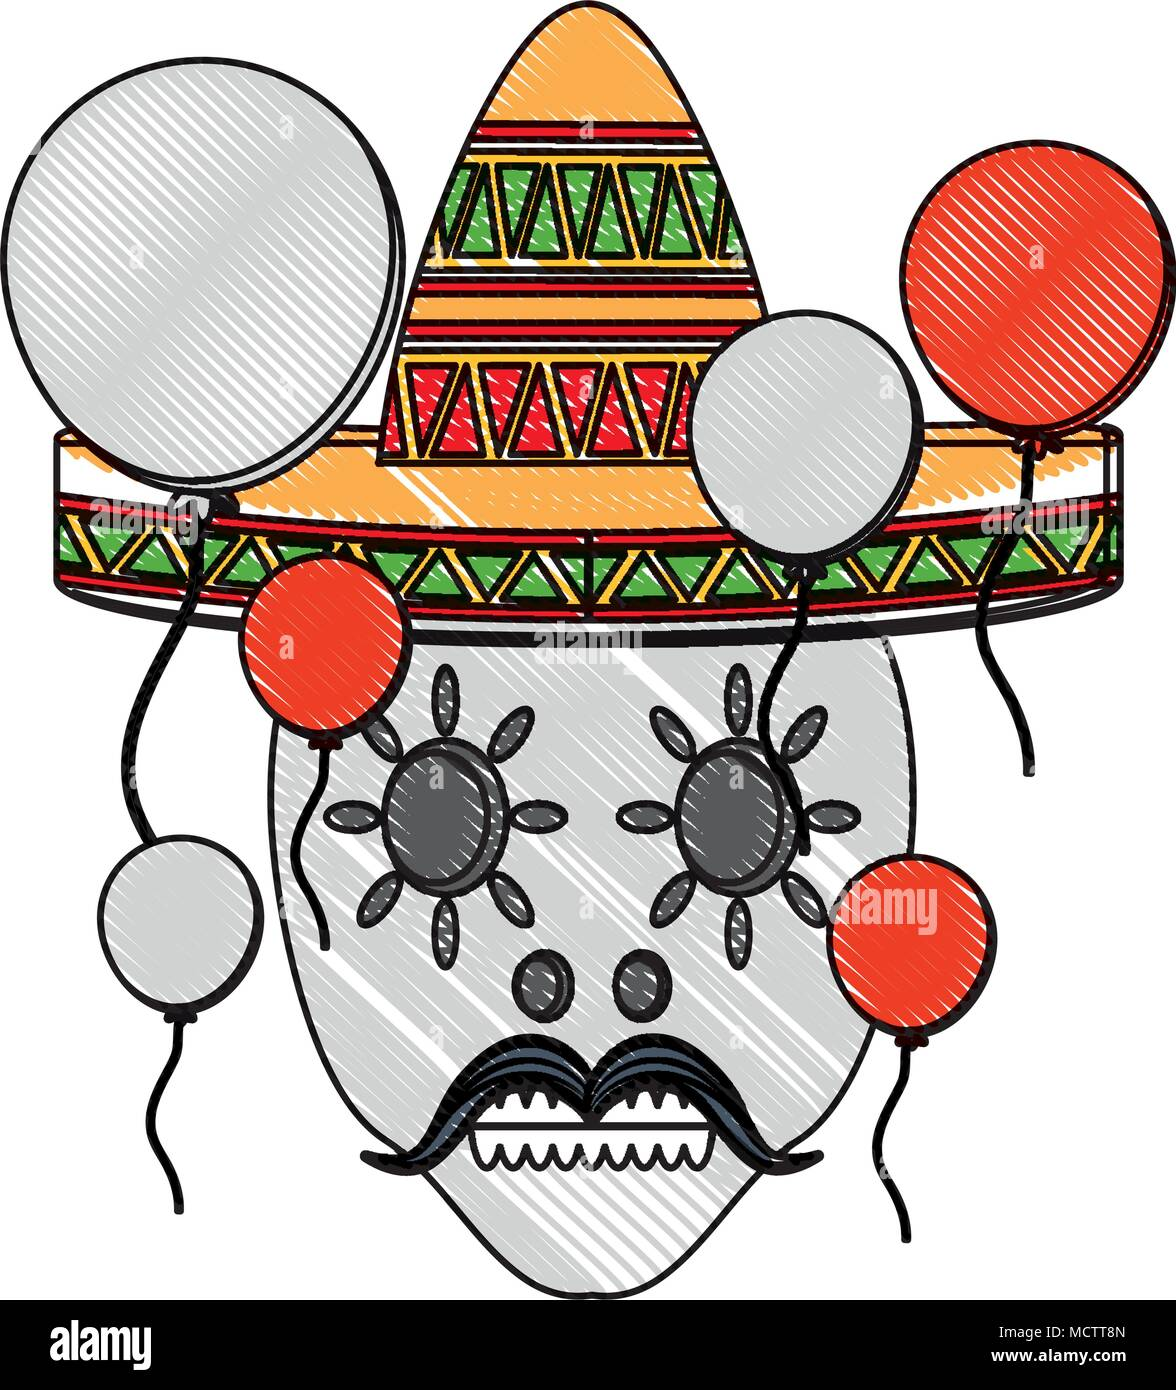 sugar skull with mexican hat and decorative balloons around over white background, colorful design. vector illustration - Stock Image